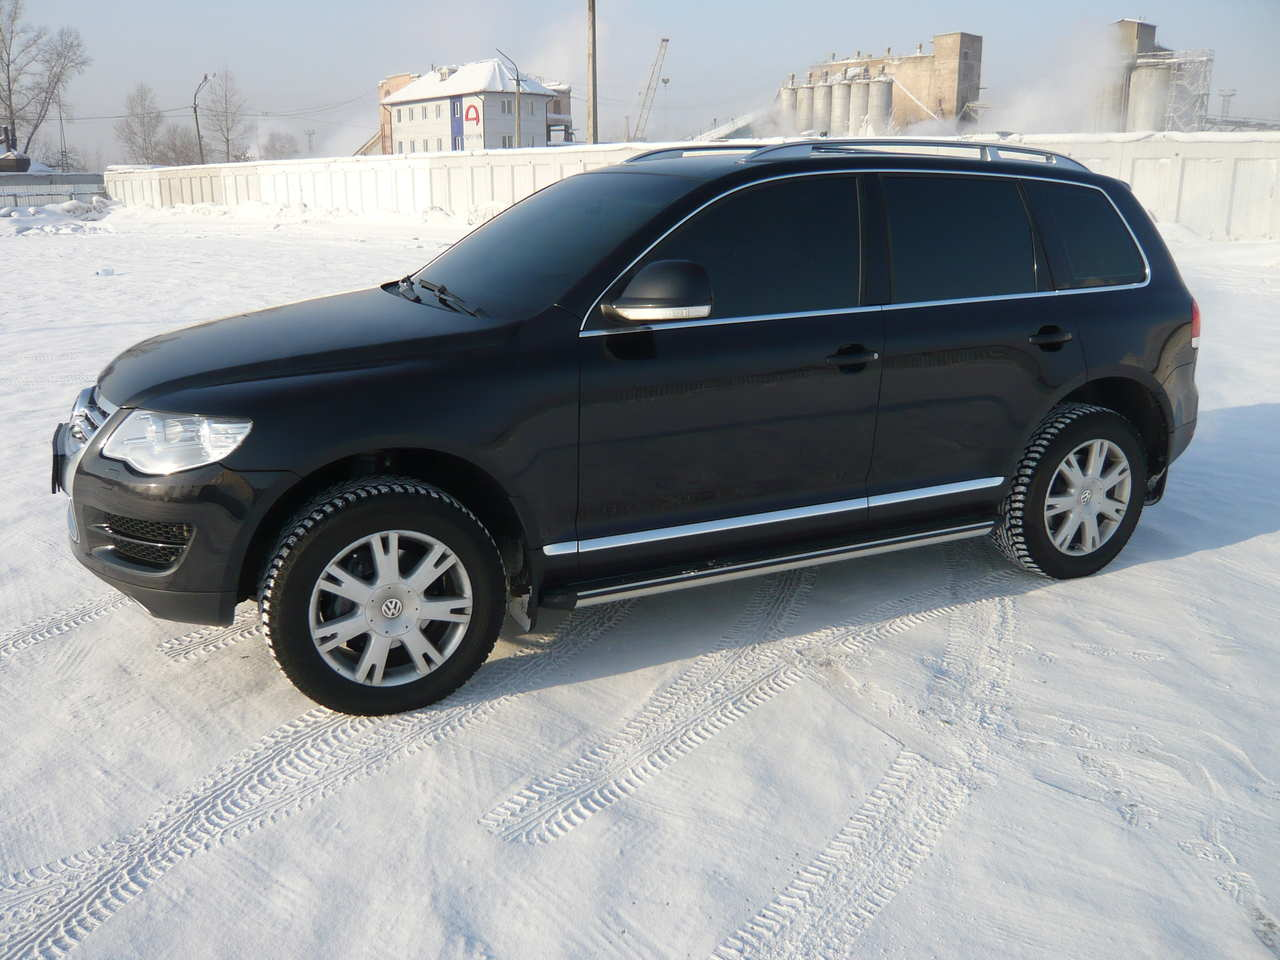 used 2009 volkswagen touareg photos 3000cc diesel. Black Bedroom Furniture Sets. Home Design Ideas